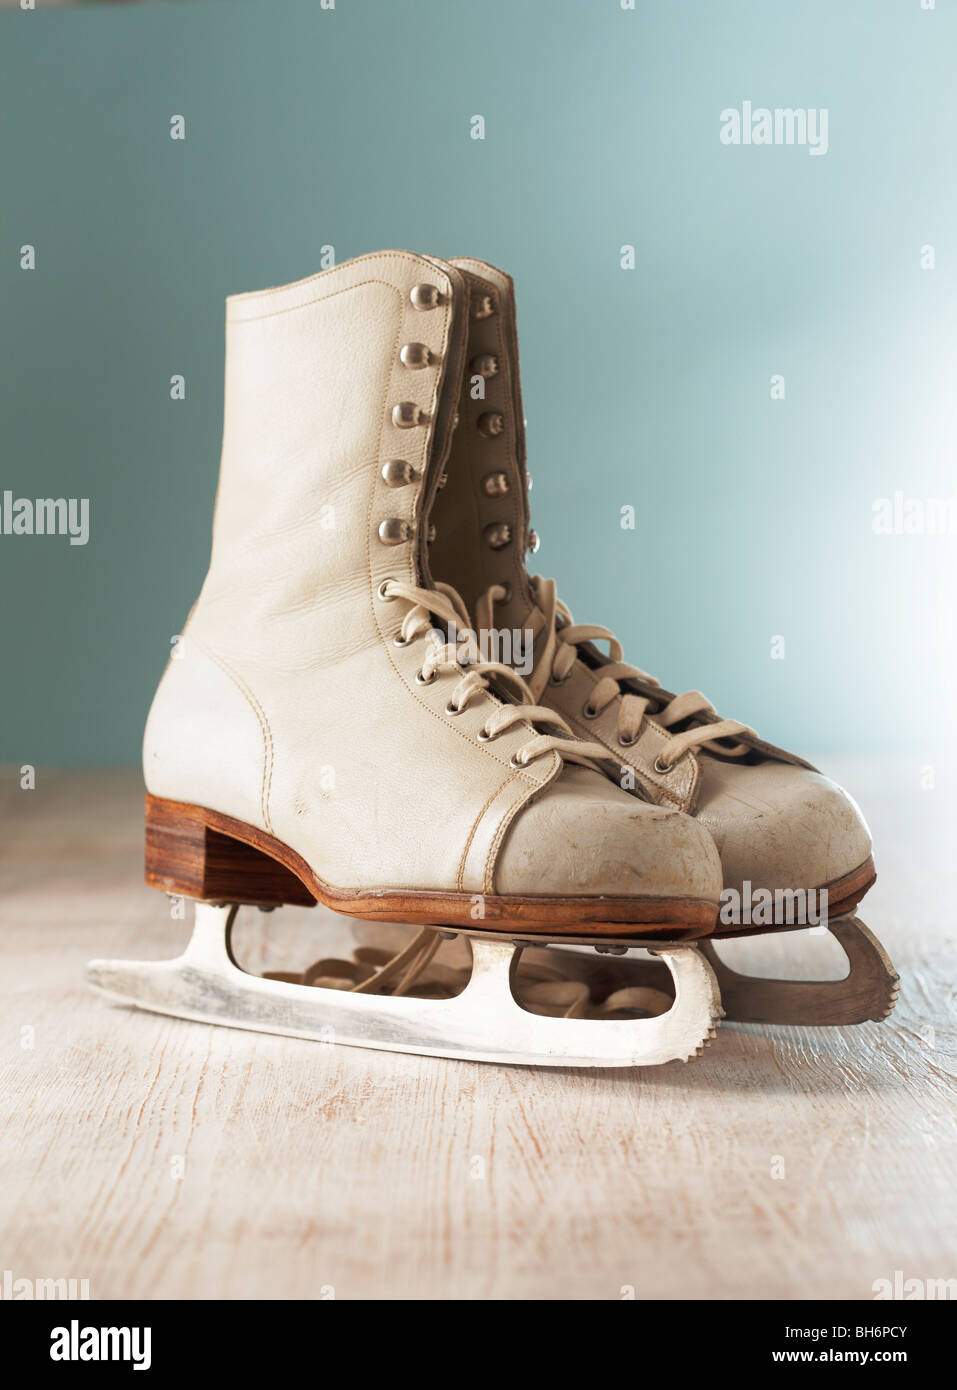 ice skates photos ice skates images alamy. Black Bedroom Furniture Sets. Home Design Ideas